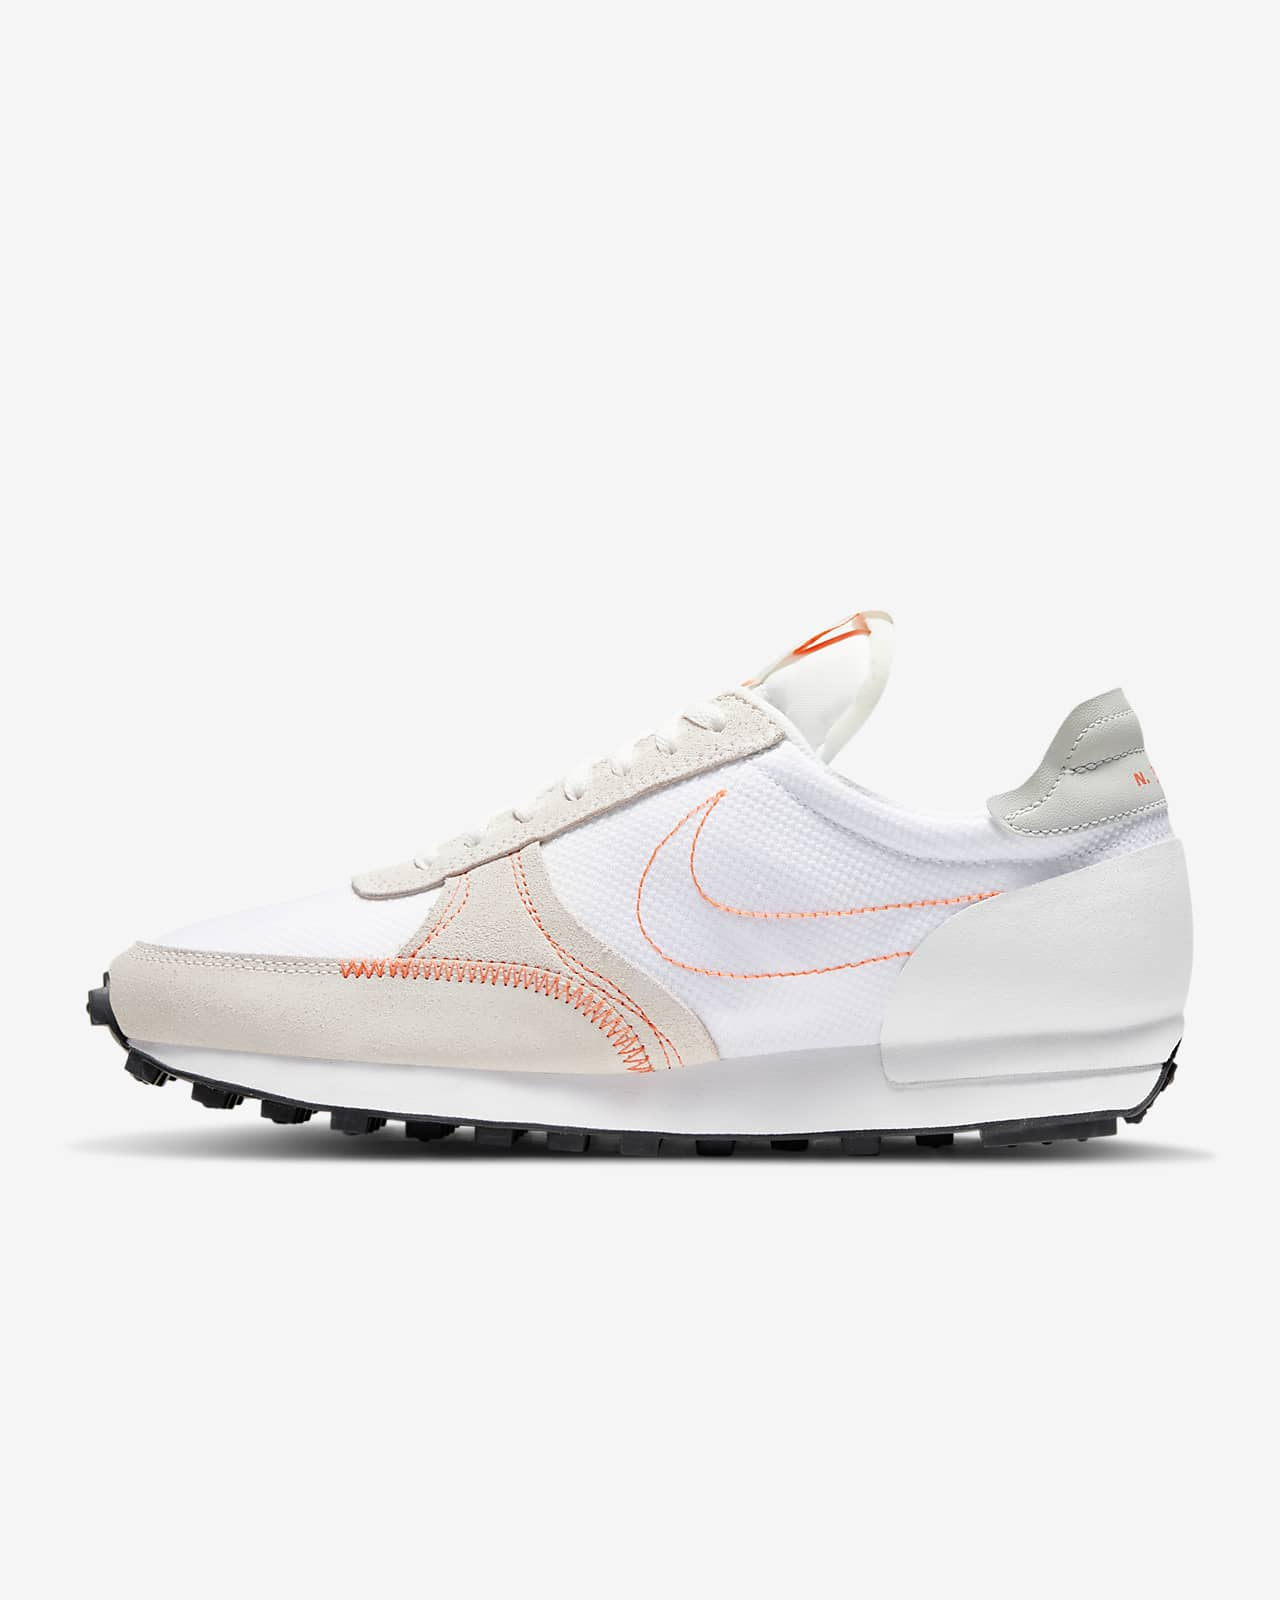 Nike DBreak-Type Women's Shoe